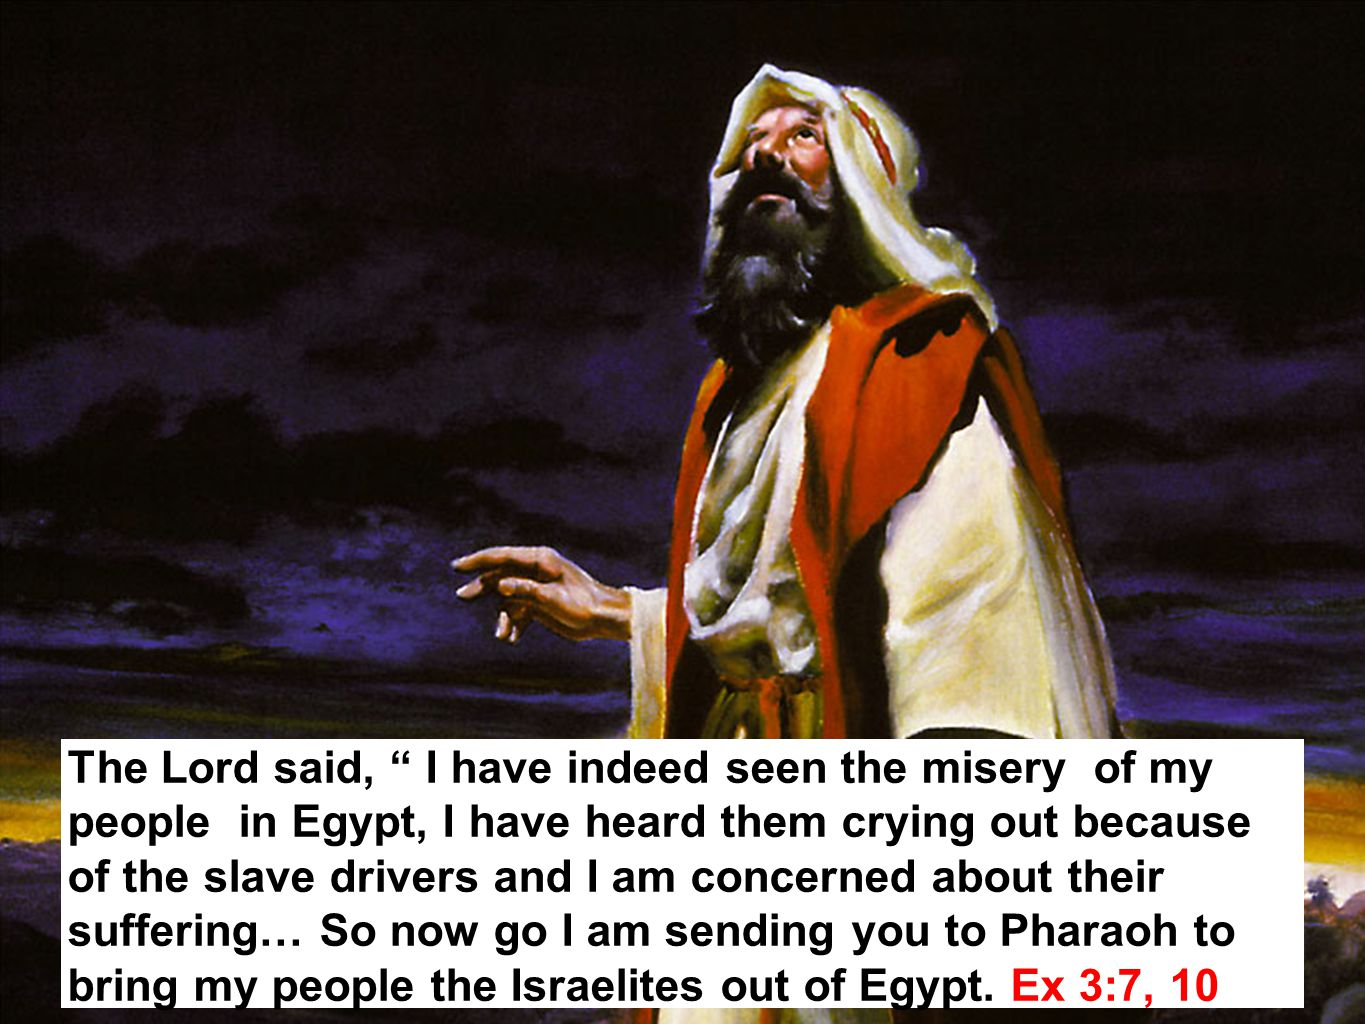 10 The Lord said, I have indeed seen the misery of my people in Egypt, I have heard them crying out because of the slave drivers and I am concerned about their suffering… So now go I am sending you to Pharaoh to bring my people the Israelites out of Egypt.